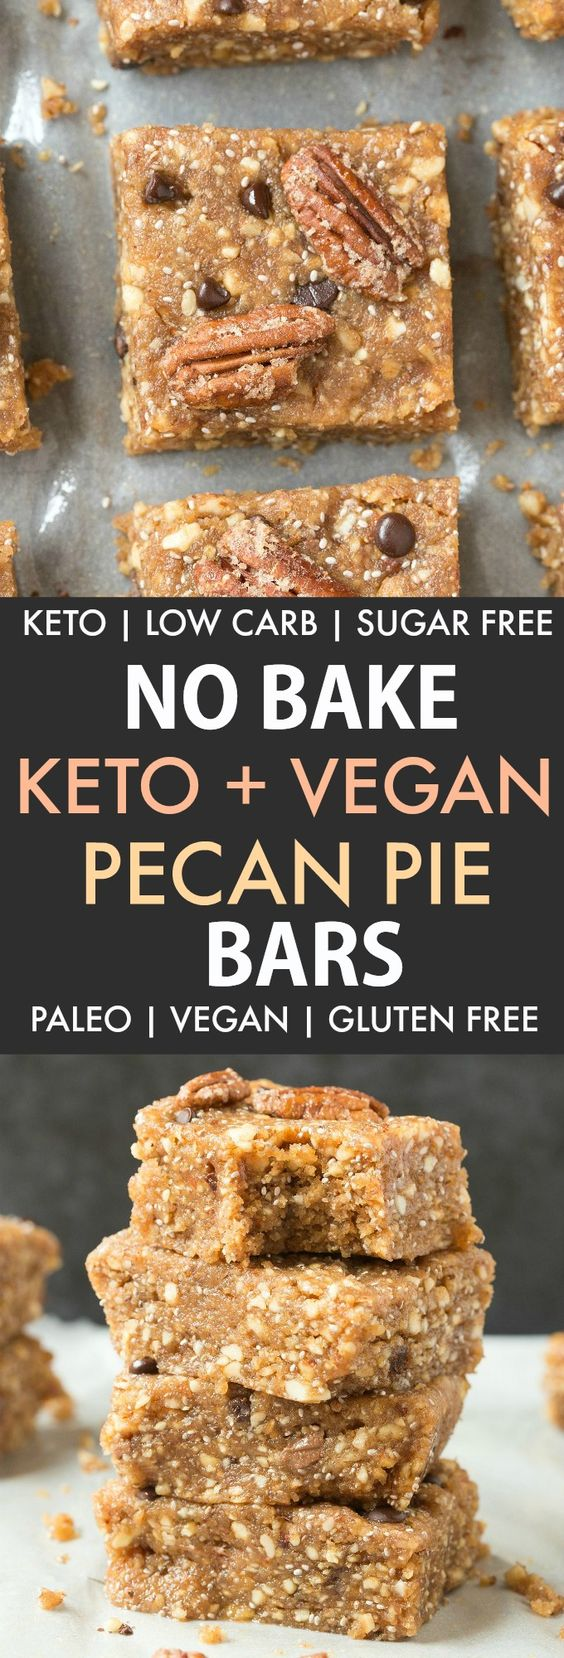 No Bake Paleo Vegan Pecan Pie Bars